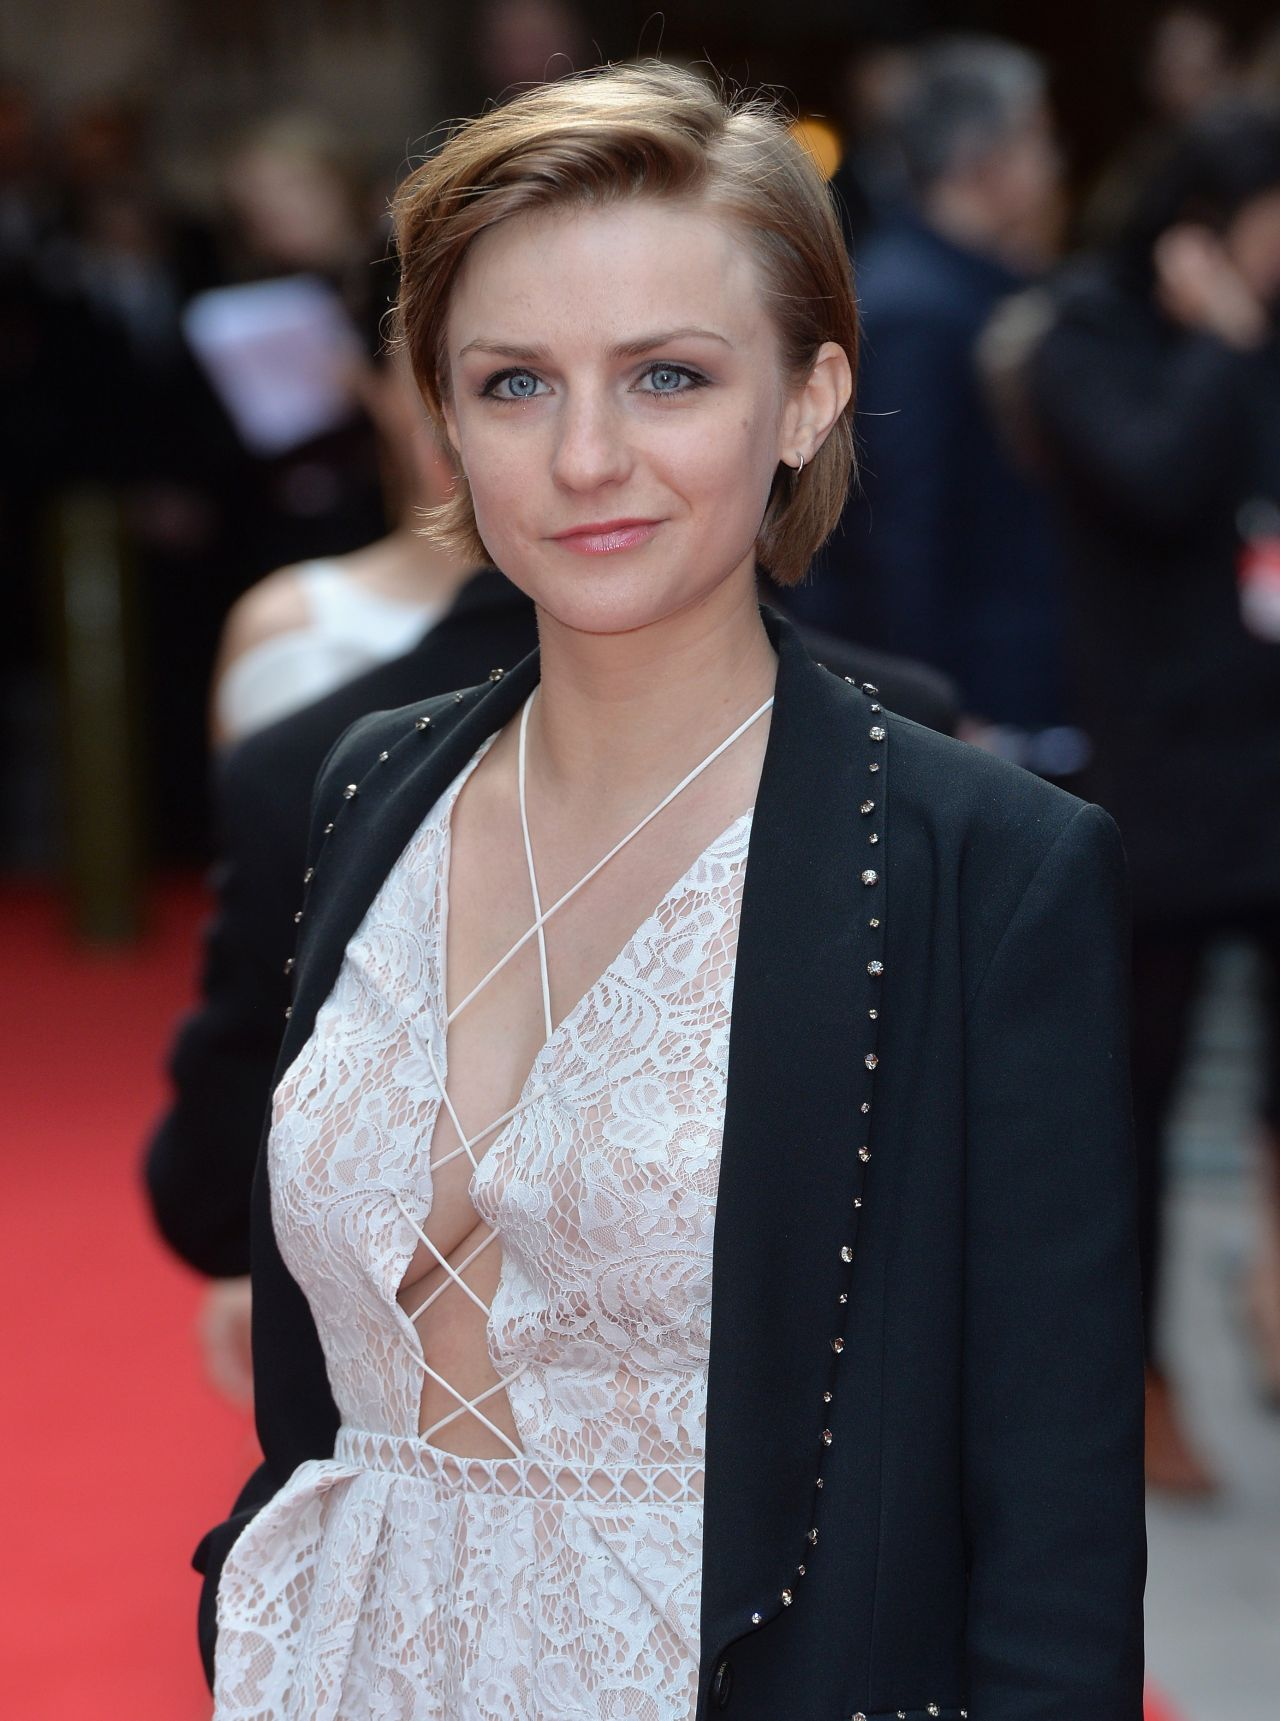 faye marsay conanfaye marsay instagram, faye marsay twitter, faye marsay amy, faye marsay facebook, faye marsay bradley cooper, faye marsay conan, faye marsay interview, faye marsay bio, faye marsay mcmafia, faye marsay game of thrones, faye marsay black mirror, faye marsay need for speed, faye marsay doctor who, faye marsay height, faye marsay wiki, faye marsay, faye marsay imdb, faye marsay pride, faye marsay dr who, faye marsay the white queen